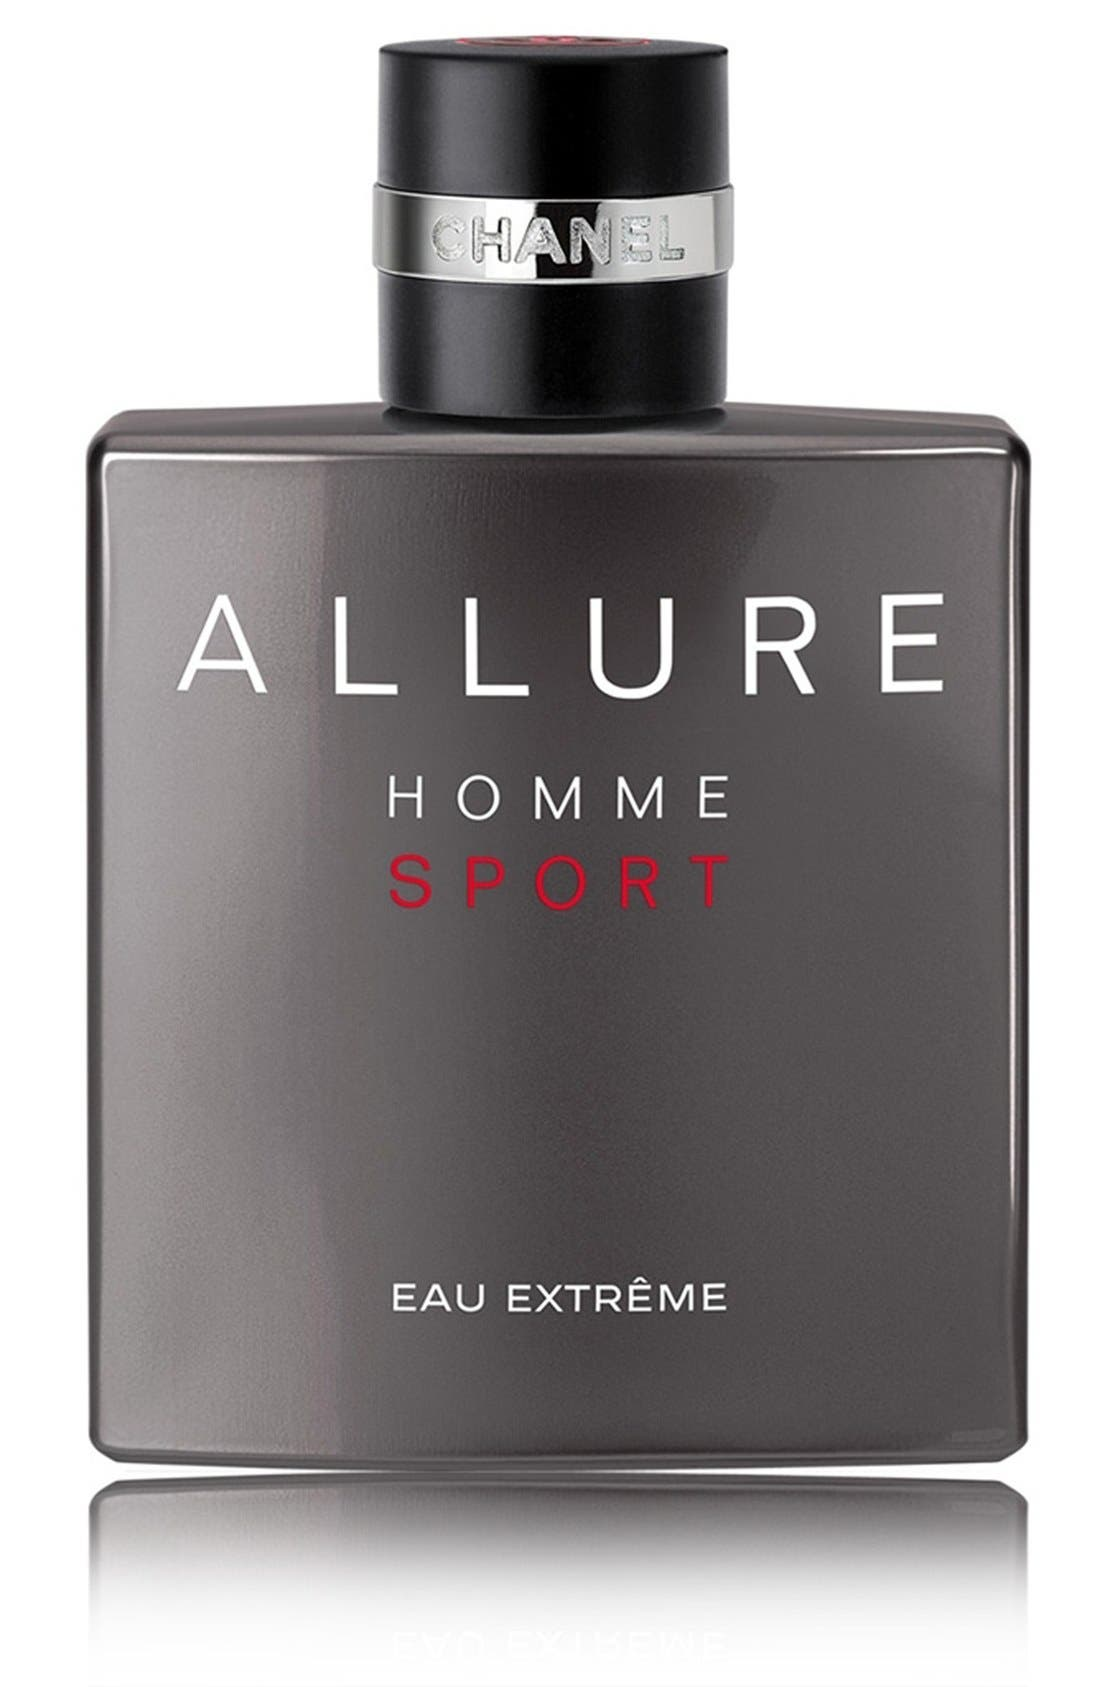 ALLURE HOMME SPORT EAU EXTREME Eau de Parfum,                             Alternate thumbnail 4, color,                             000